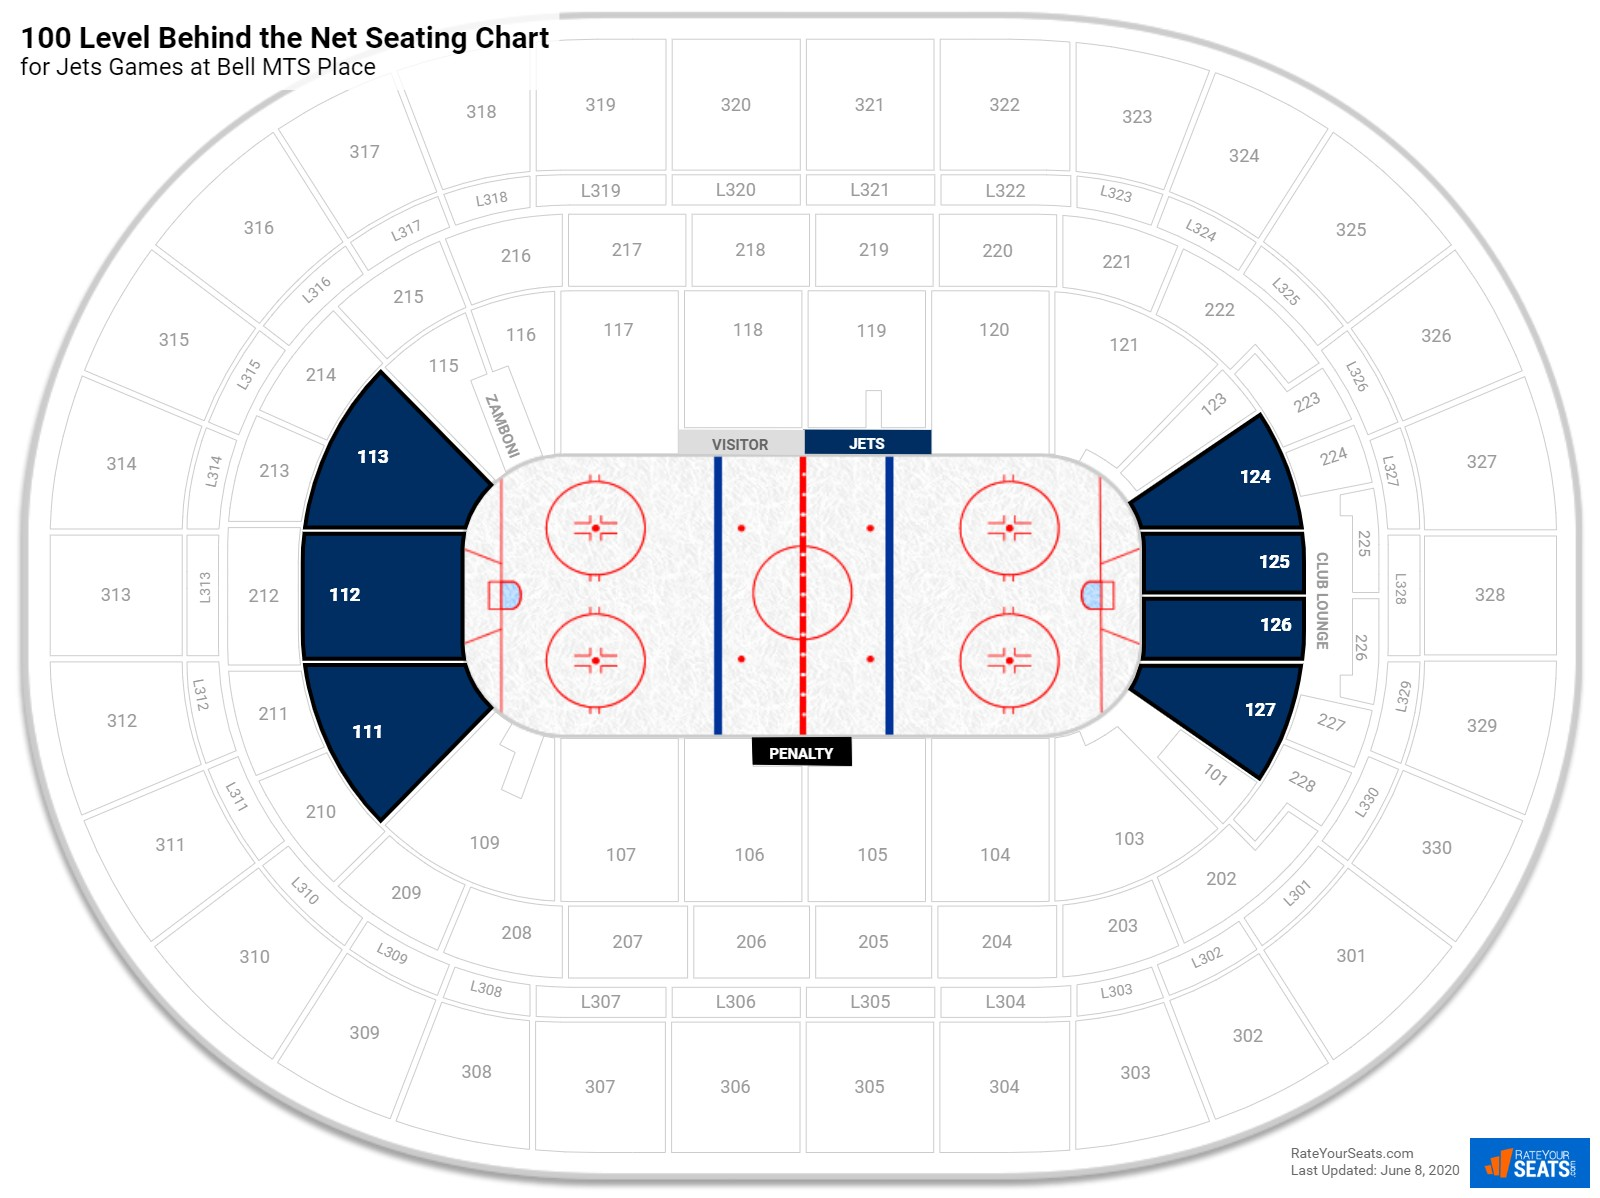 MTS Centre Lower Level Behind the Net seating chart